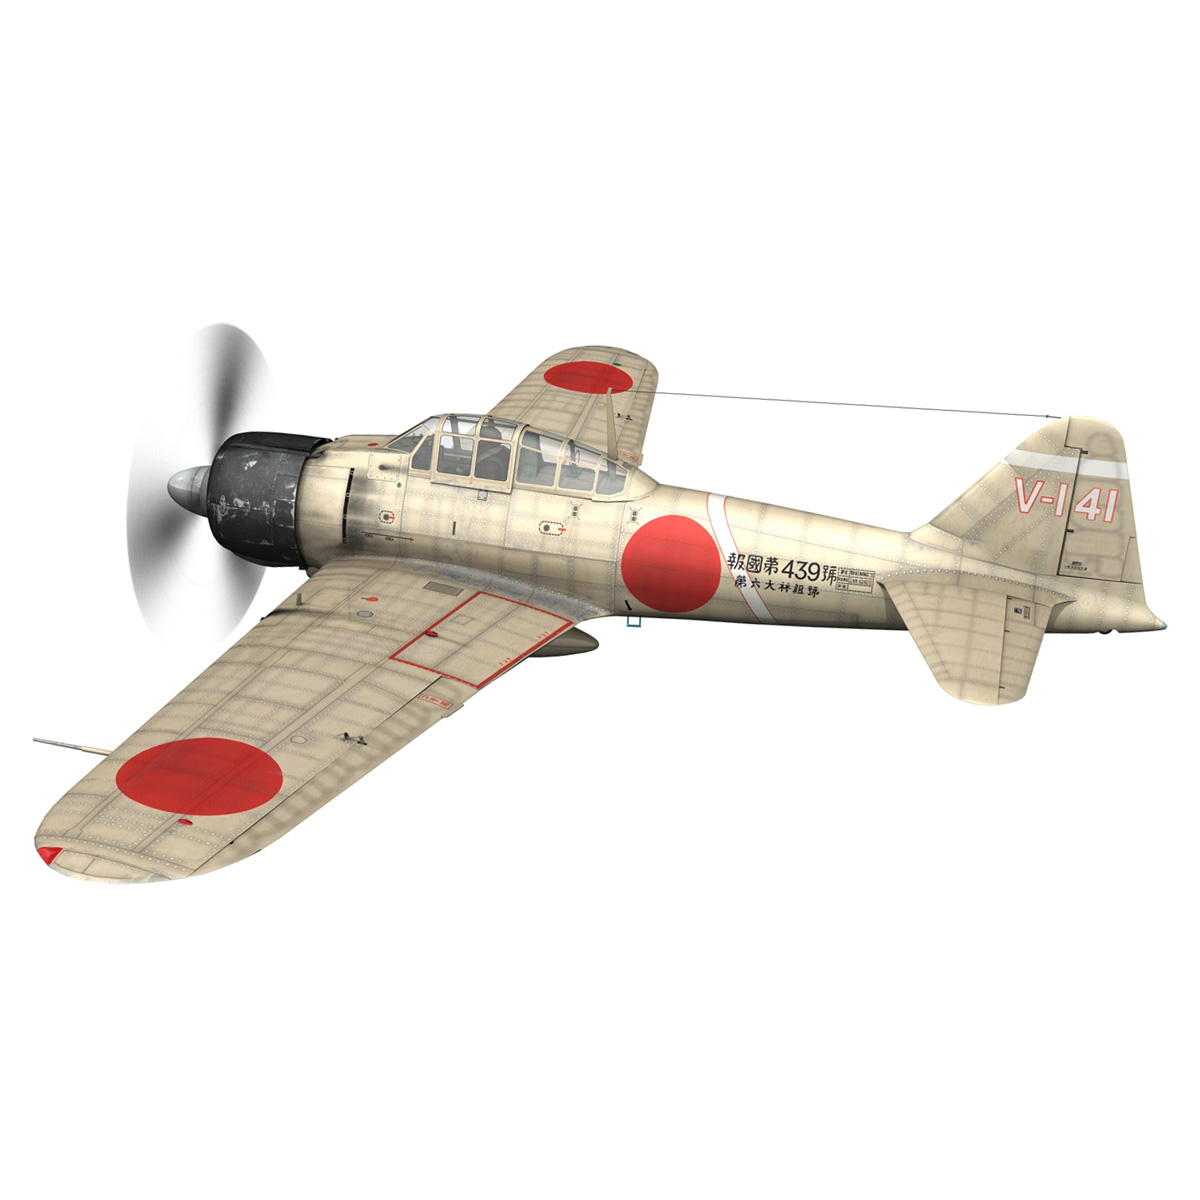 mitsubishi a6m2 zero – tainan air group 3d model fbx lwo obj 272725